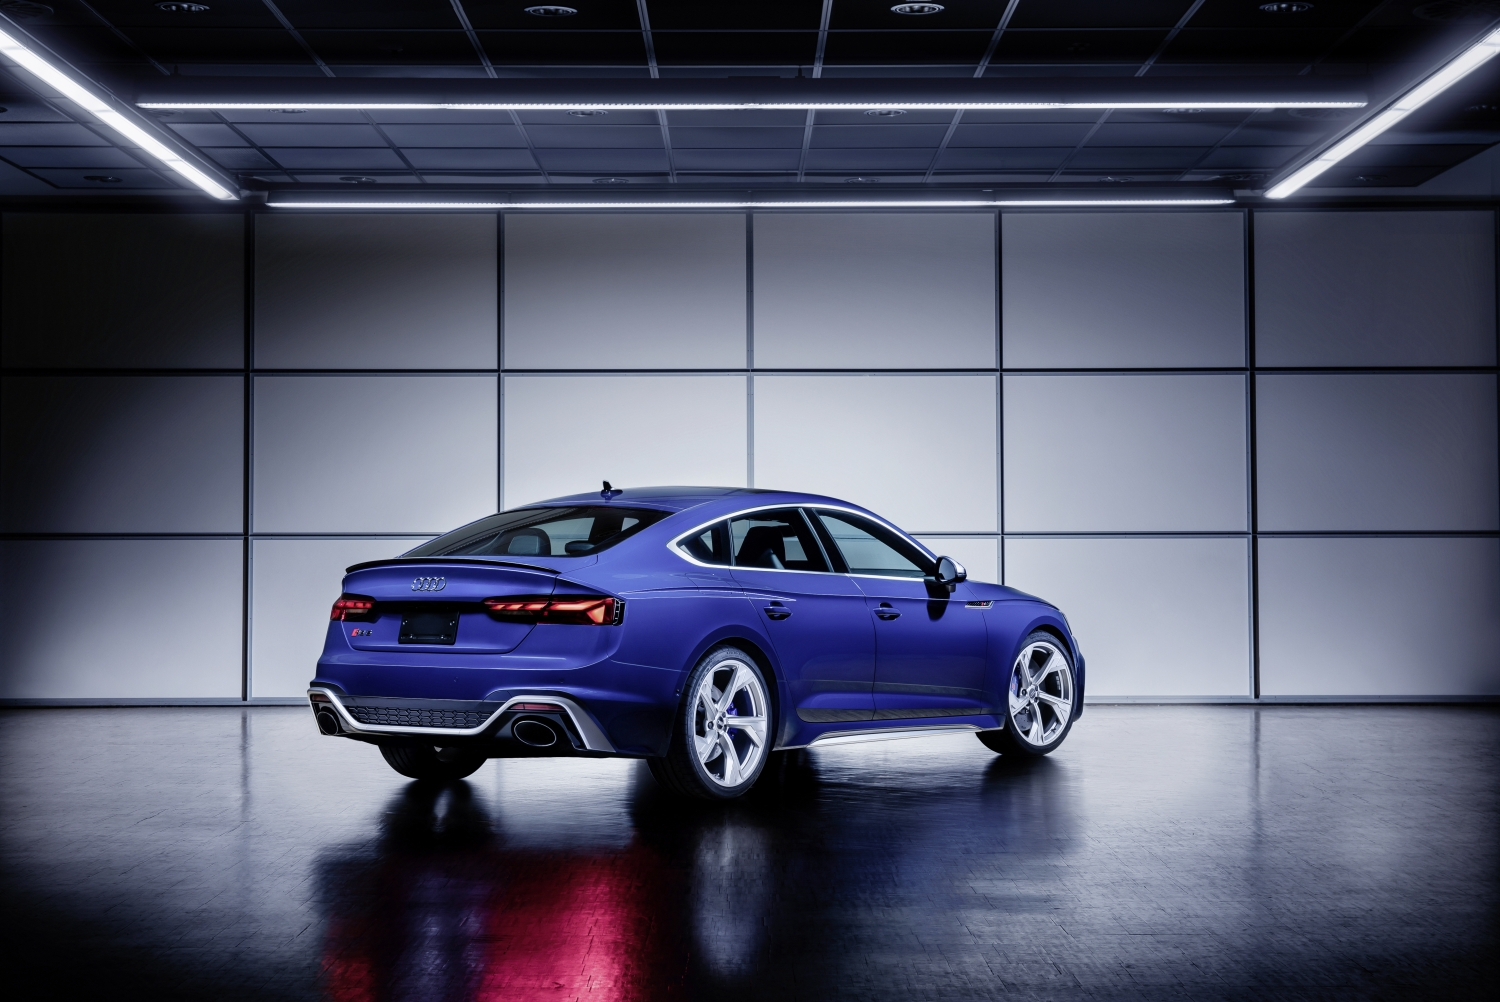 Small-7825-2021AudiRS5SportbackAscarilaunchedition